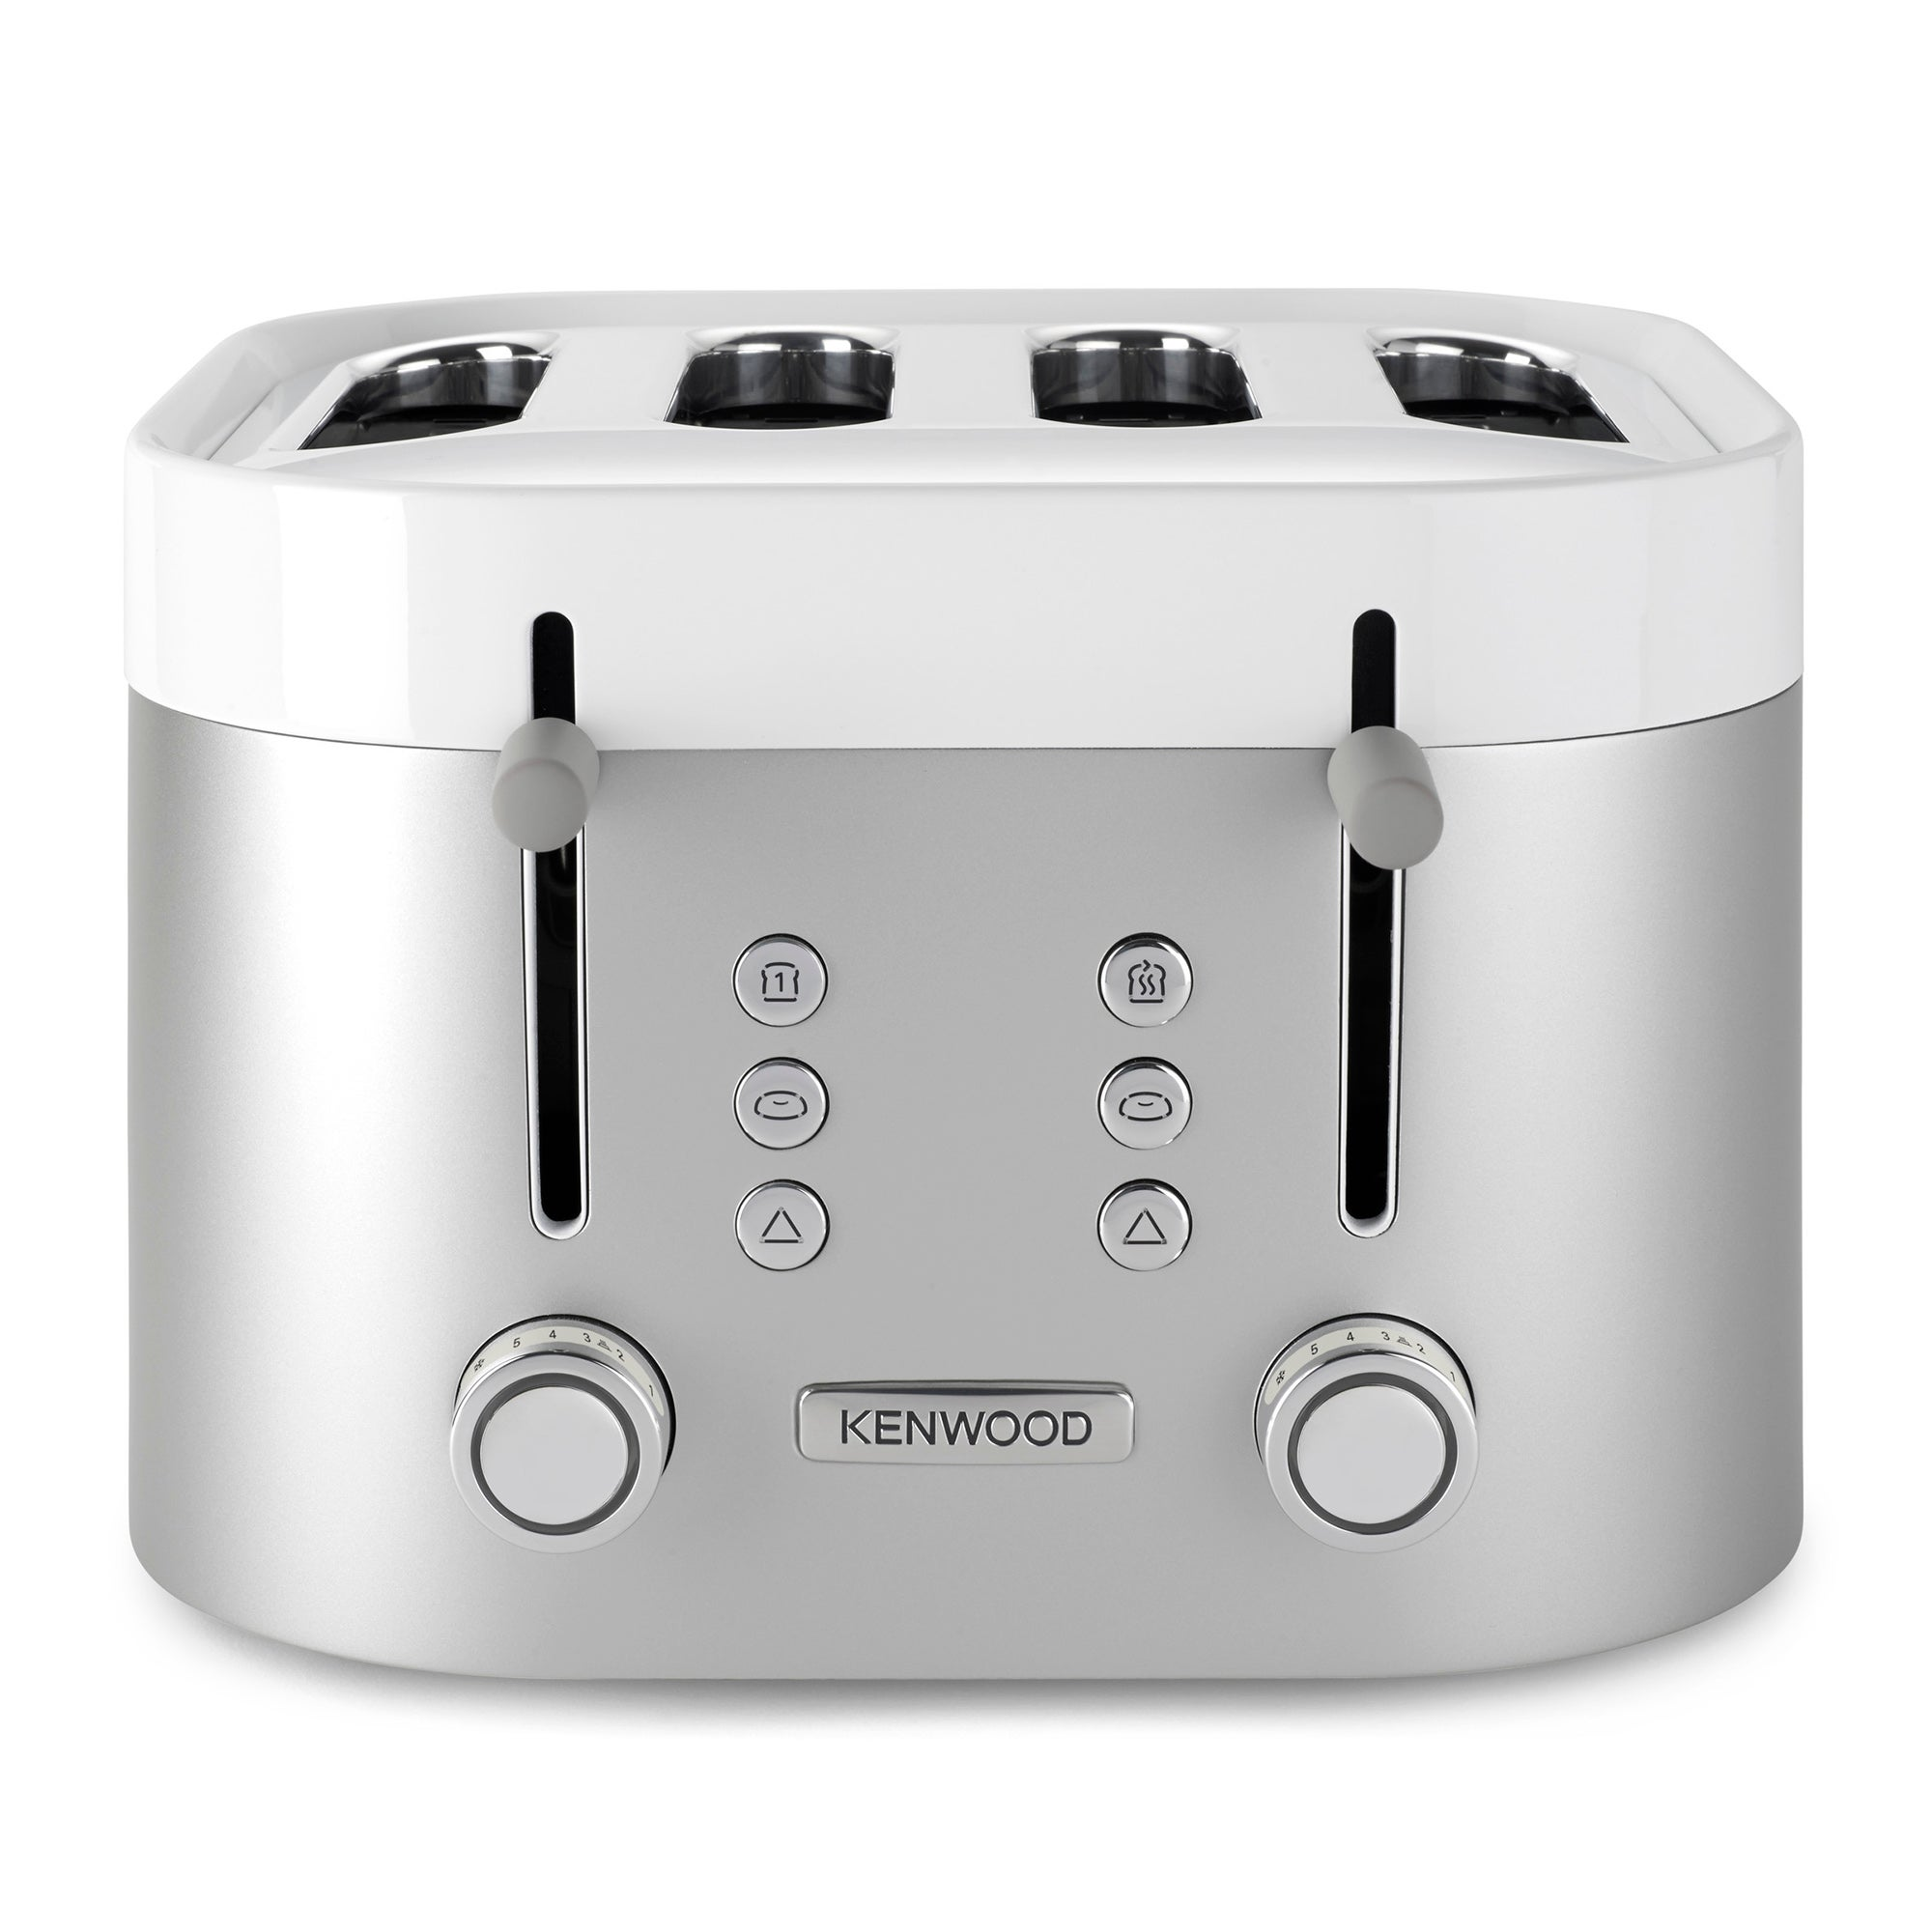 Kenwood Ksense TFM400TT Matt Finish 4 Slice Toaster Stainless Steel